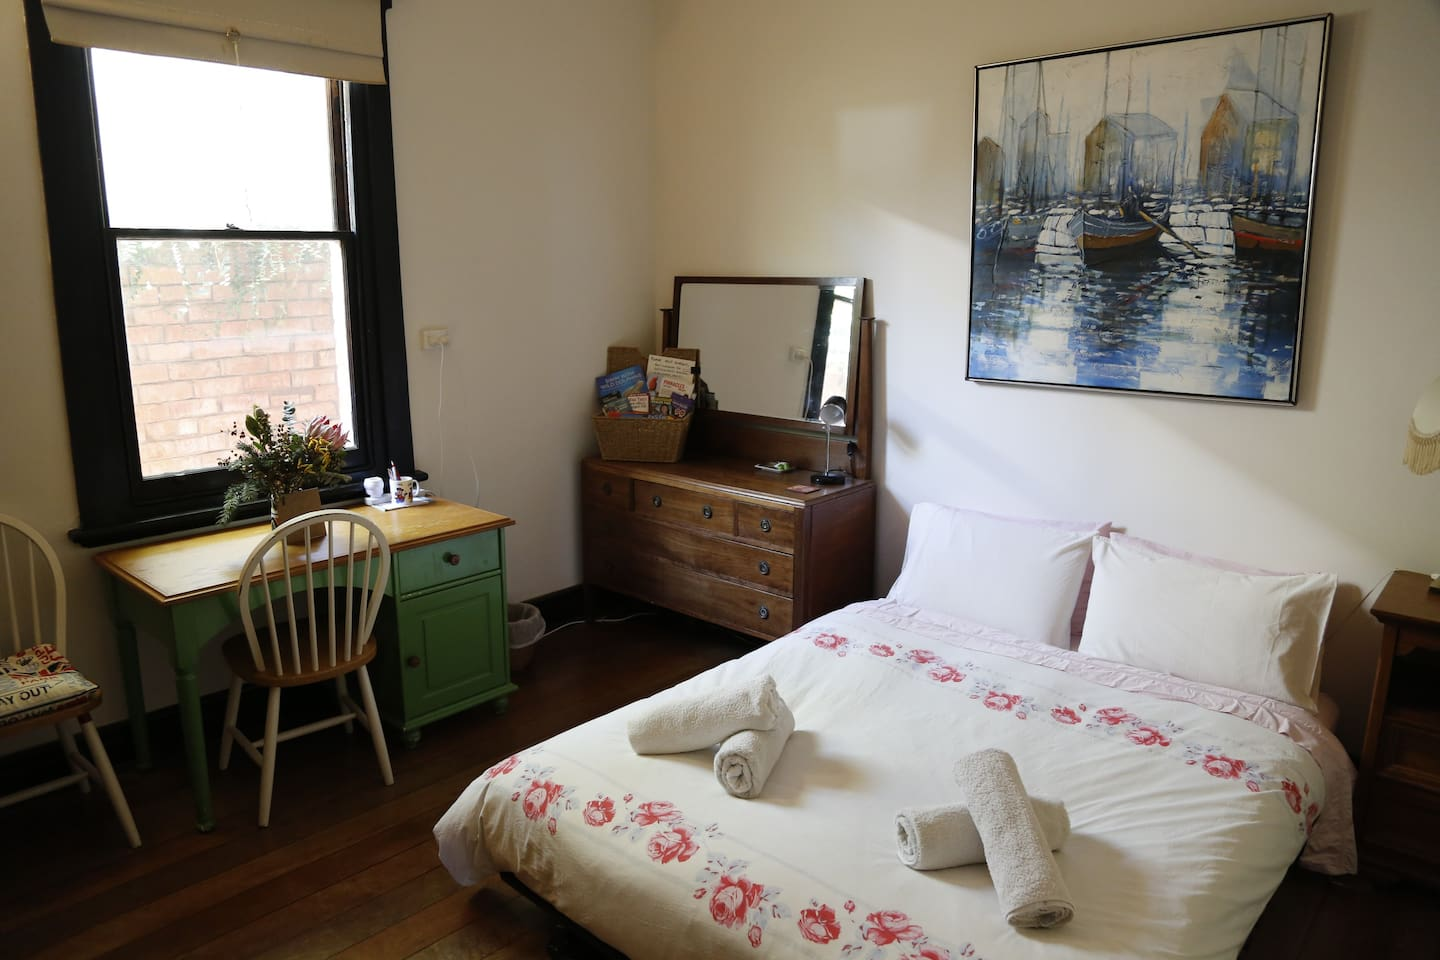 Comfortable queen sized bed in generous sized room with side table, dresser, desk and hanging space